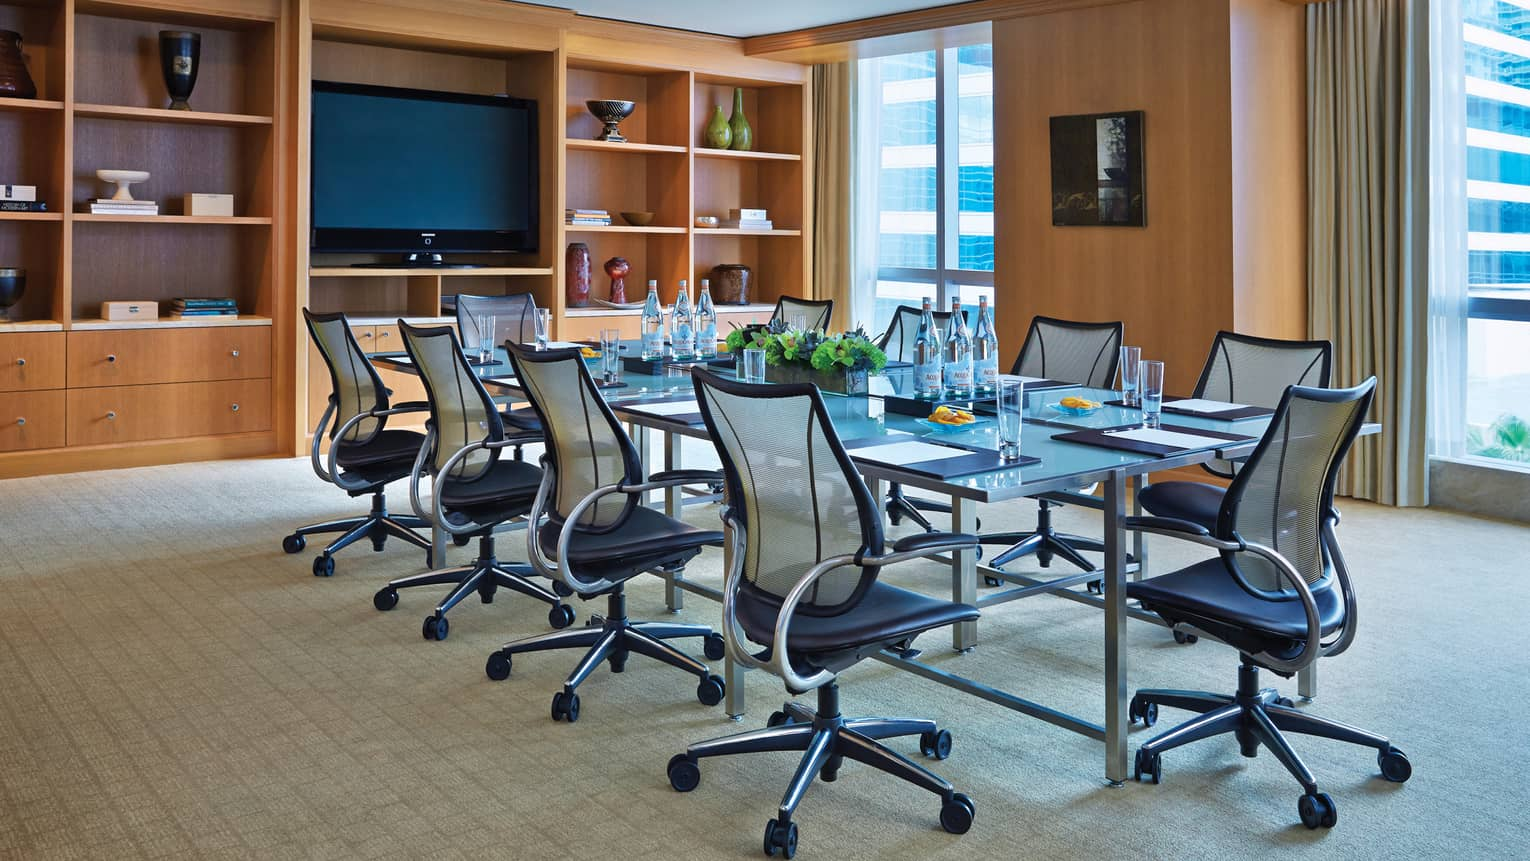 Swivel chairs line boardroom table in bright meeting room with shelves